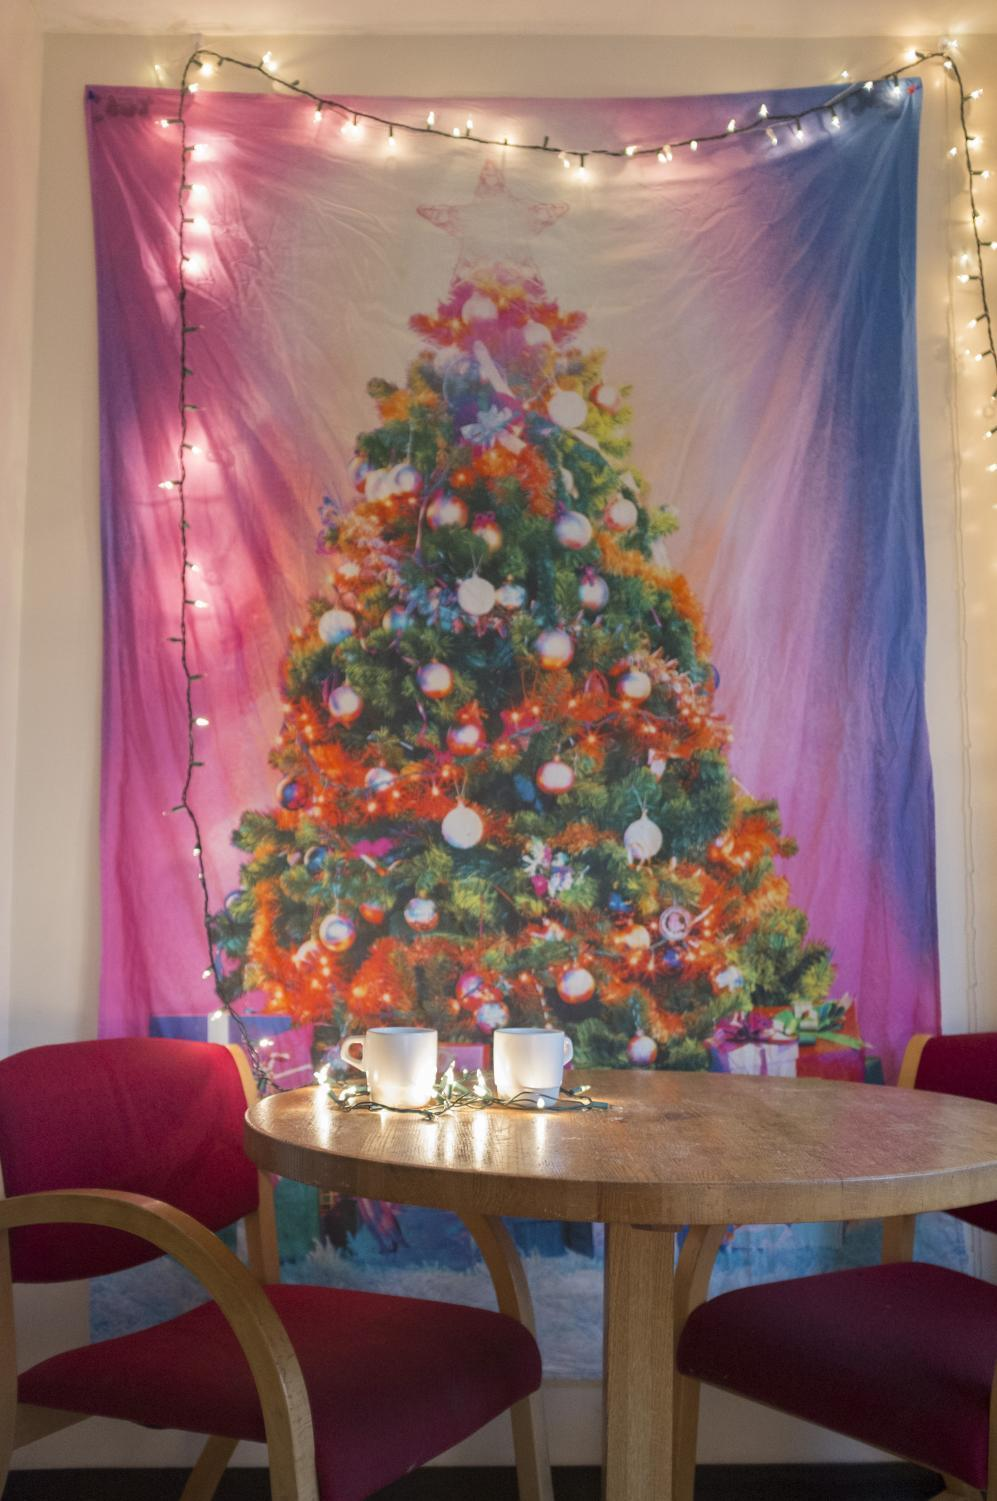 Festive tapestries are one way to decorate your dorm to celebrate Christmas.